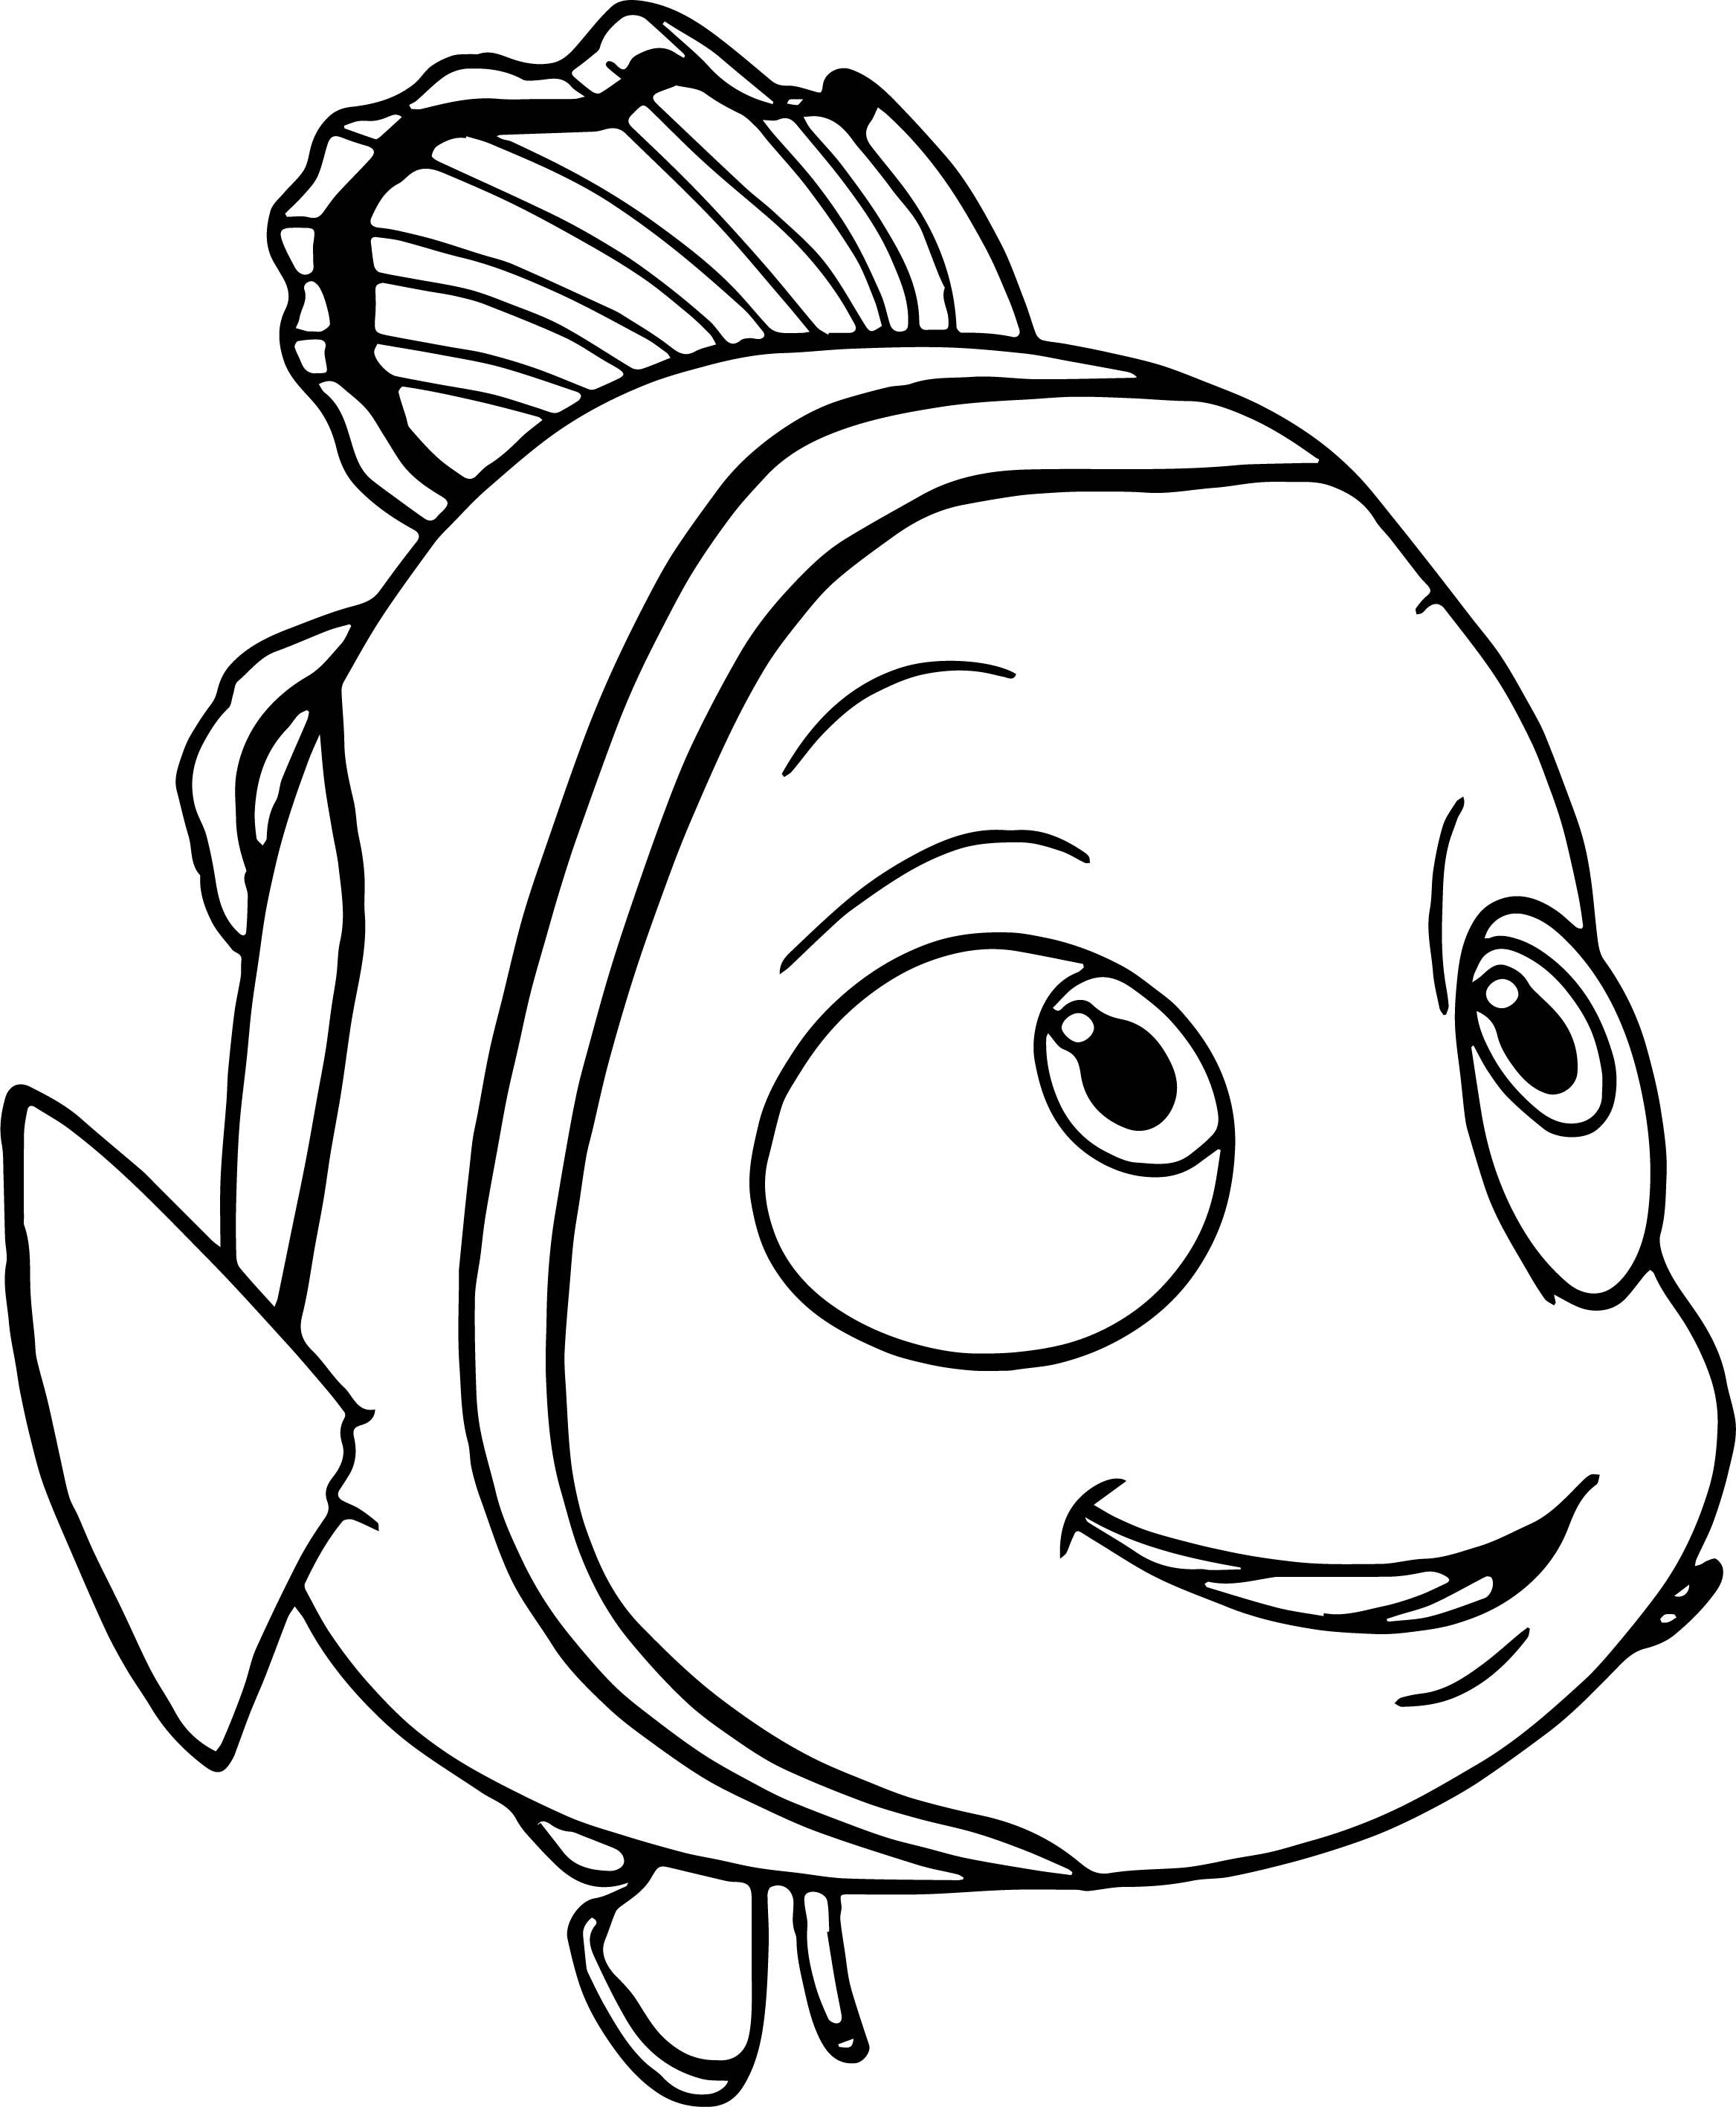 Cool Disney Finding Nemo Look Coloring Pages Nemo Coloring Pages Disney Coloring Pages Finding Nemo Coloring Pages